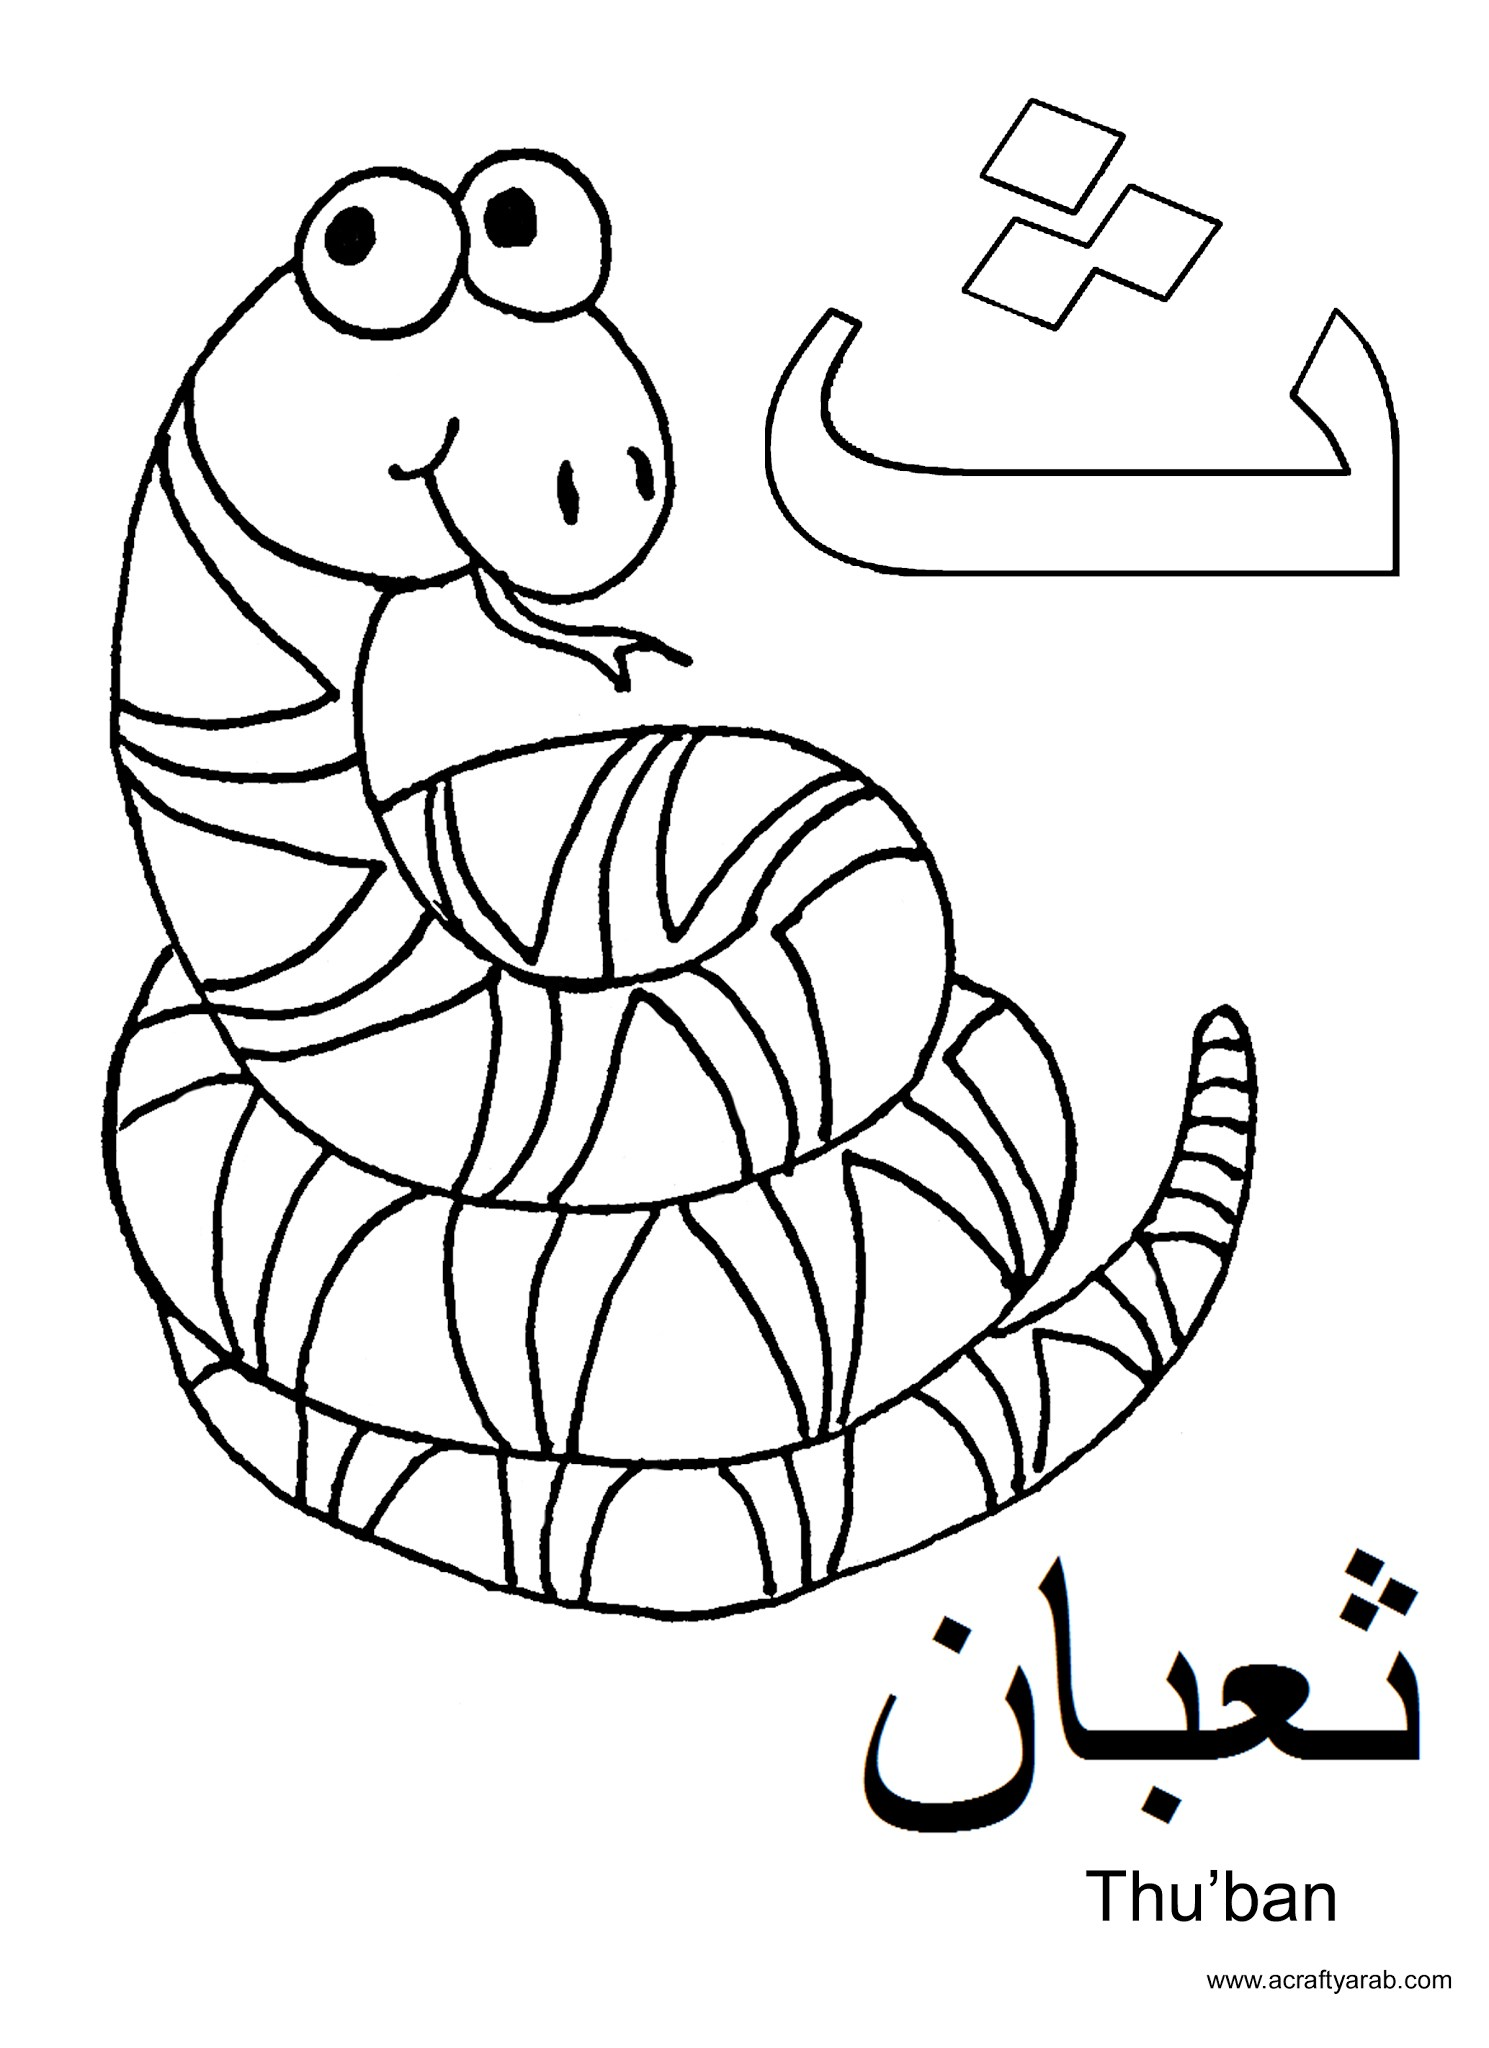 Xbox Coloring Pages Free Printable Coloring Pages